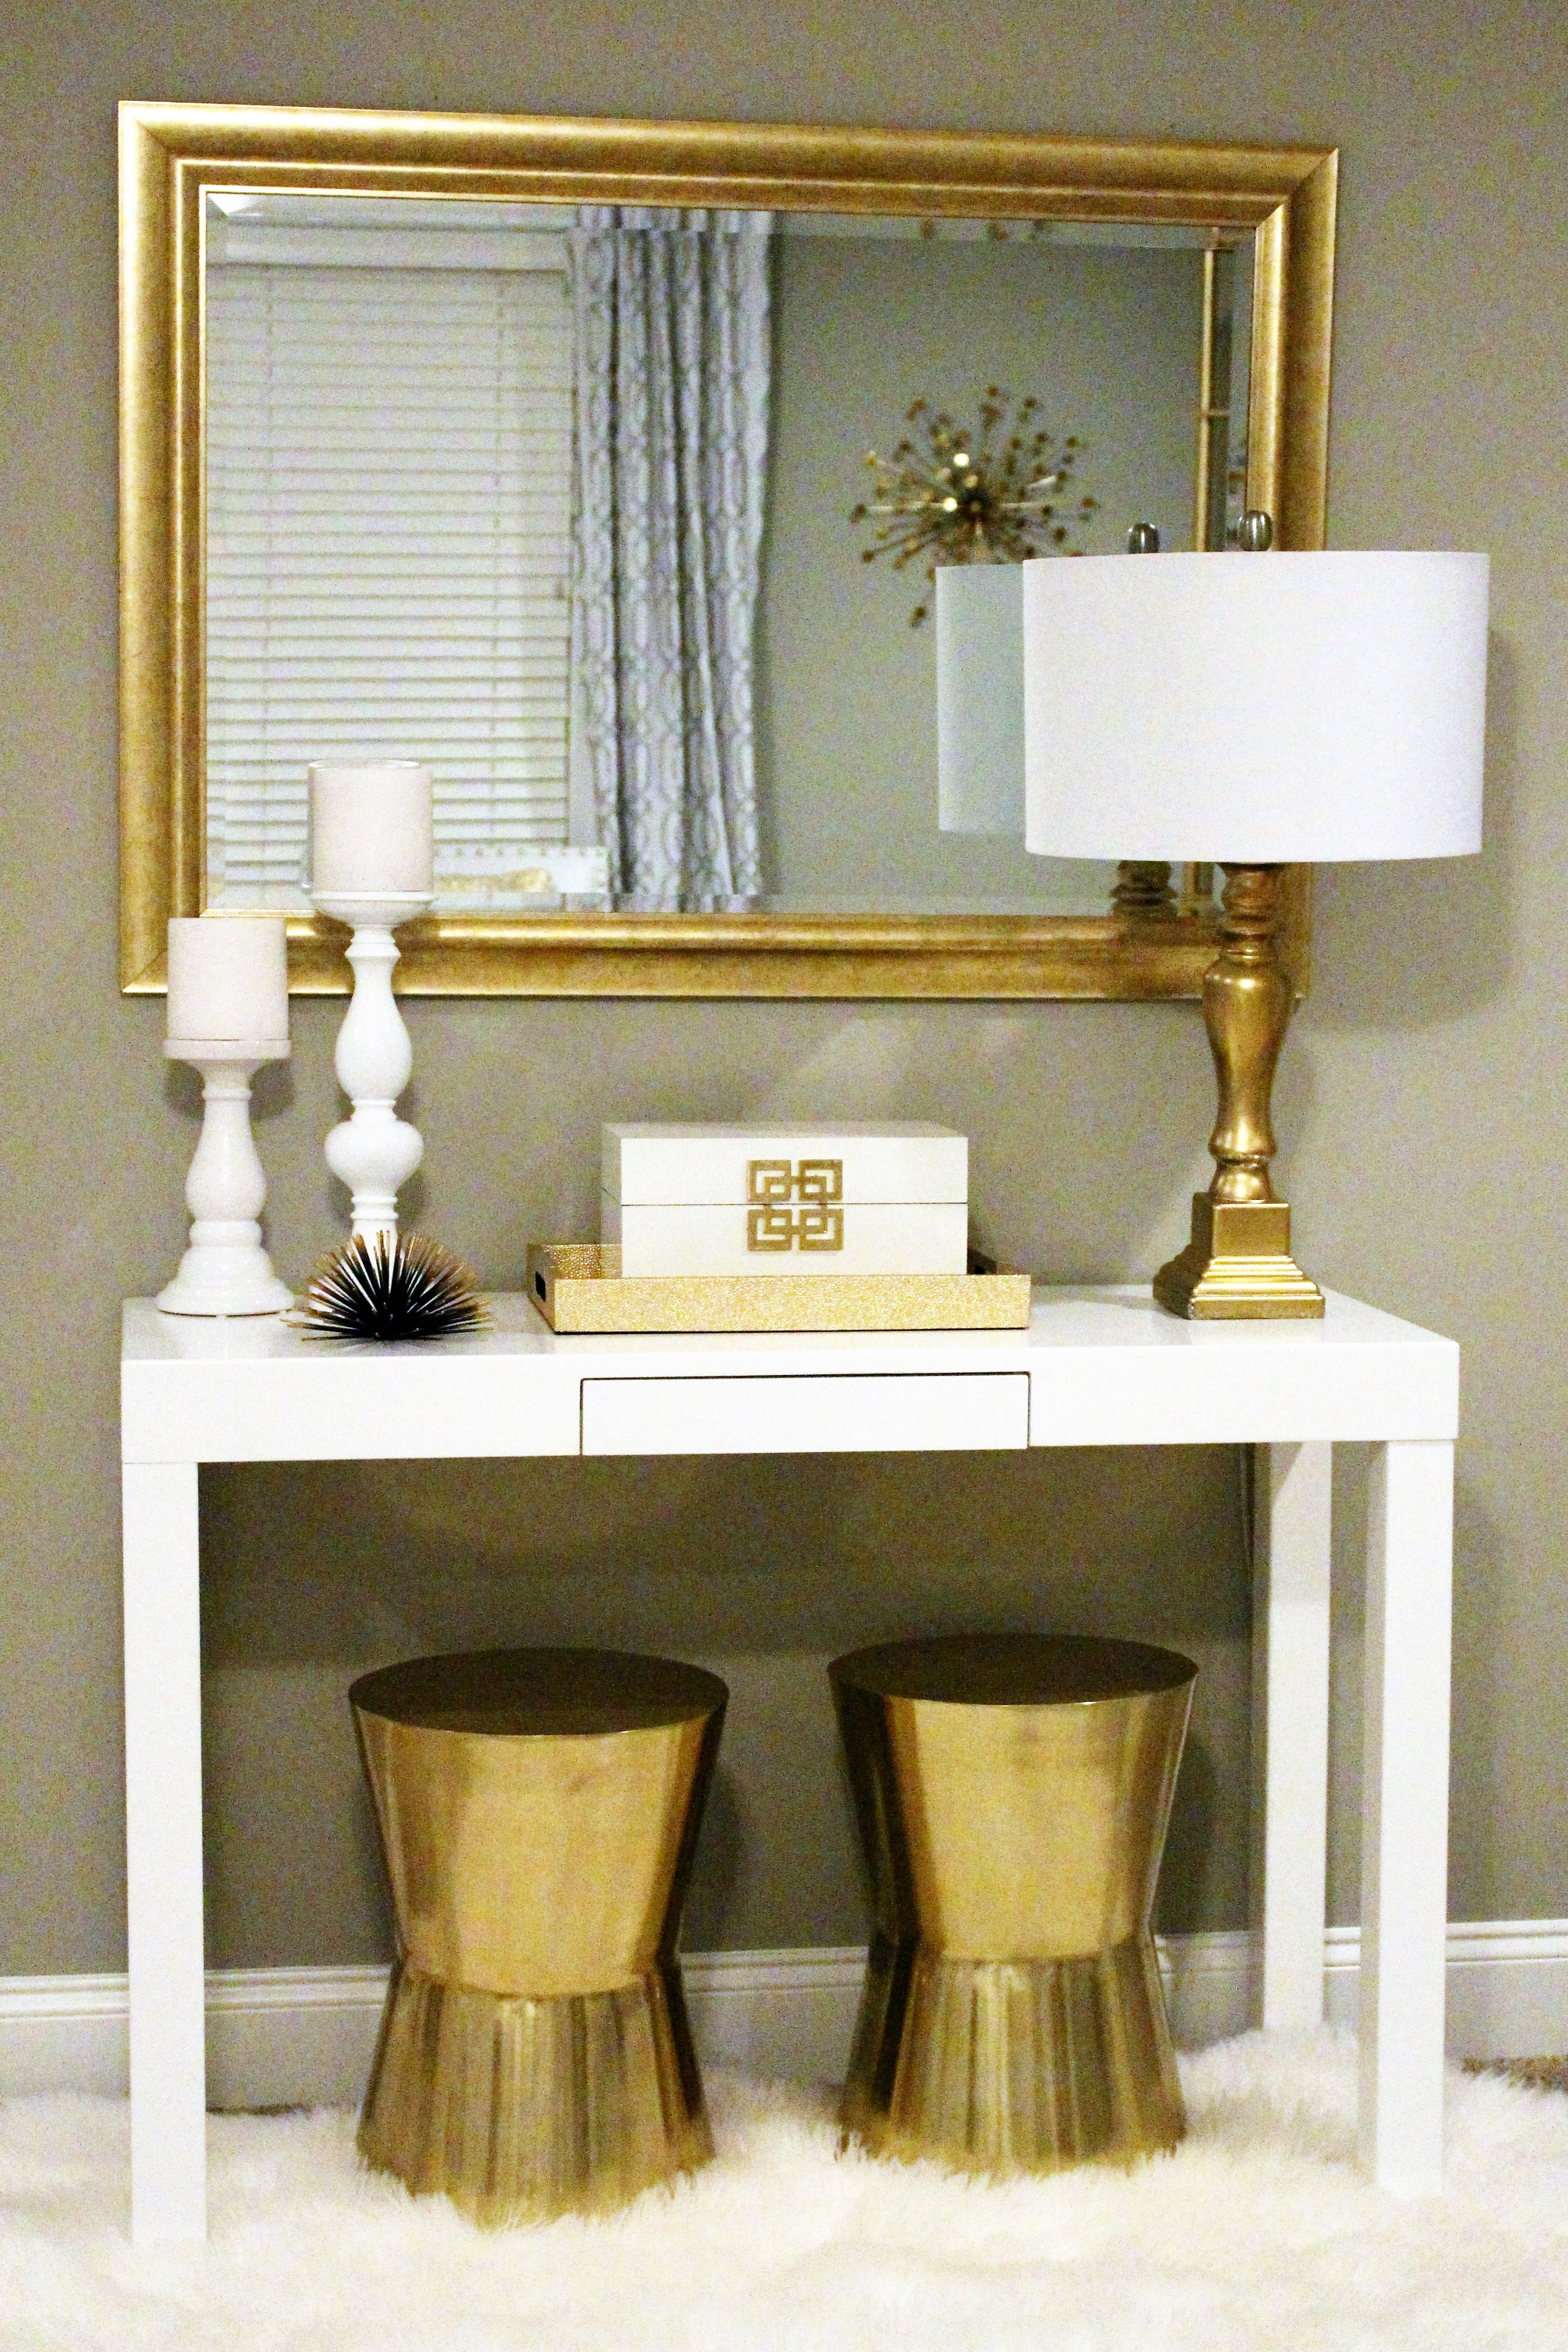 How To Style A Console Table Or Shelf – Intended For Switch Console Tables (View 18 of 20)